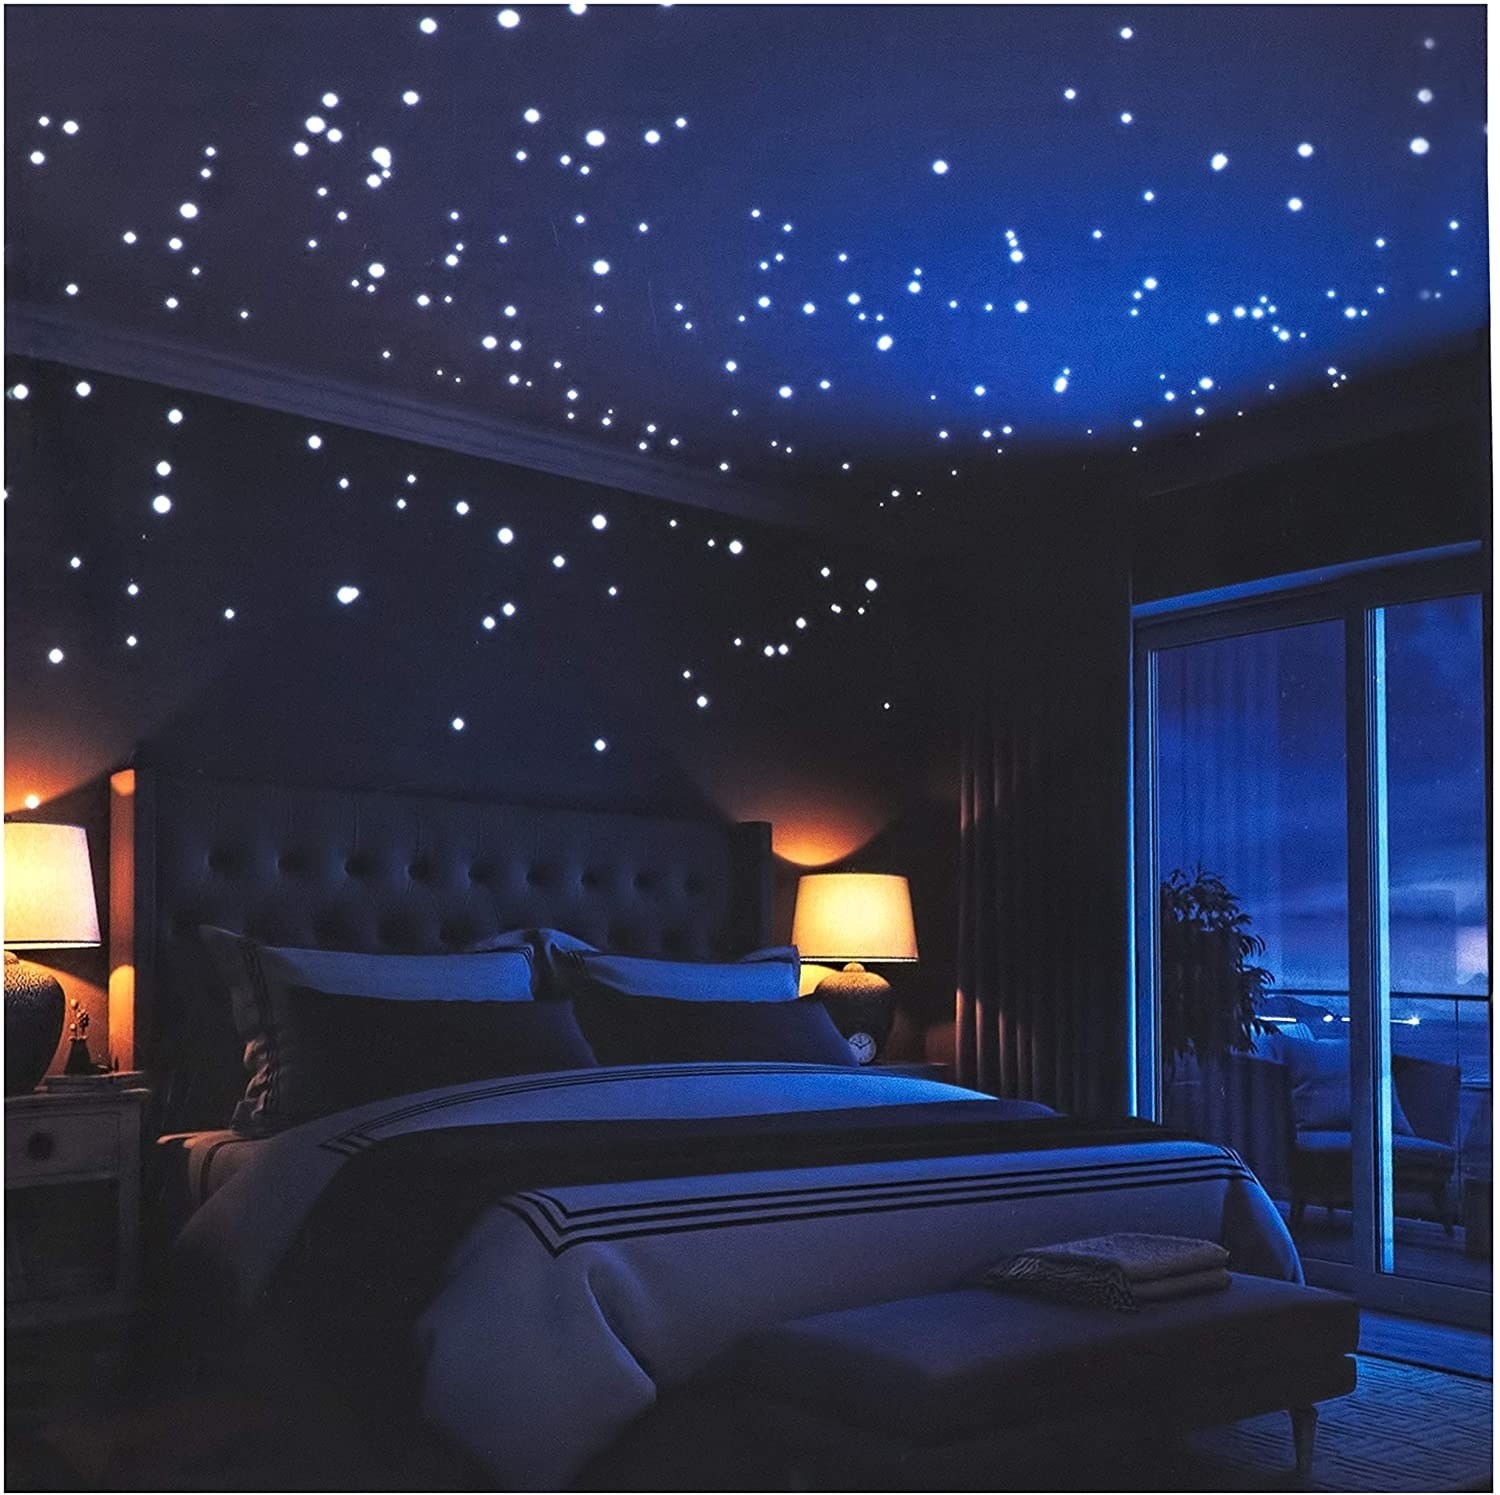 A bedroom ceiling peppered with glow-in-the-dark stars